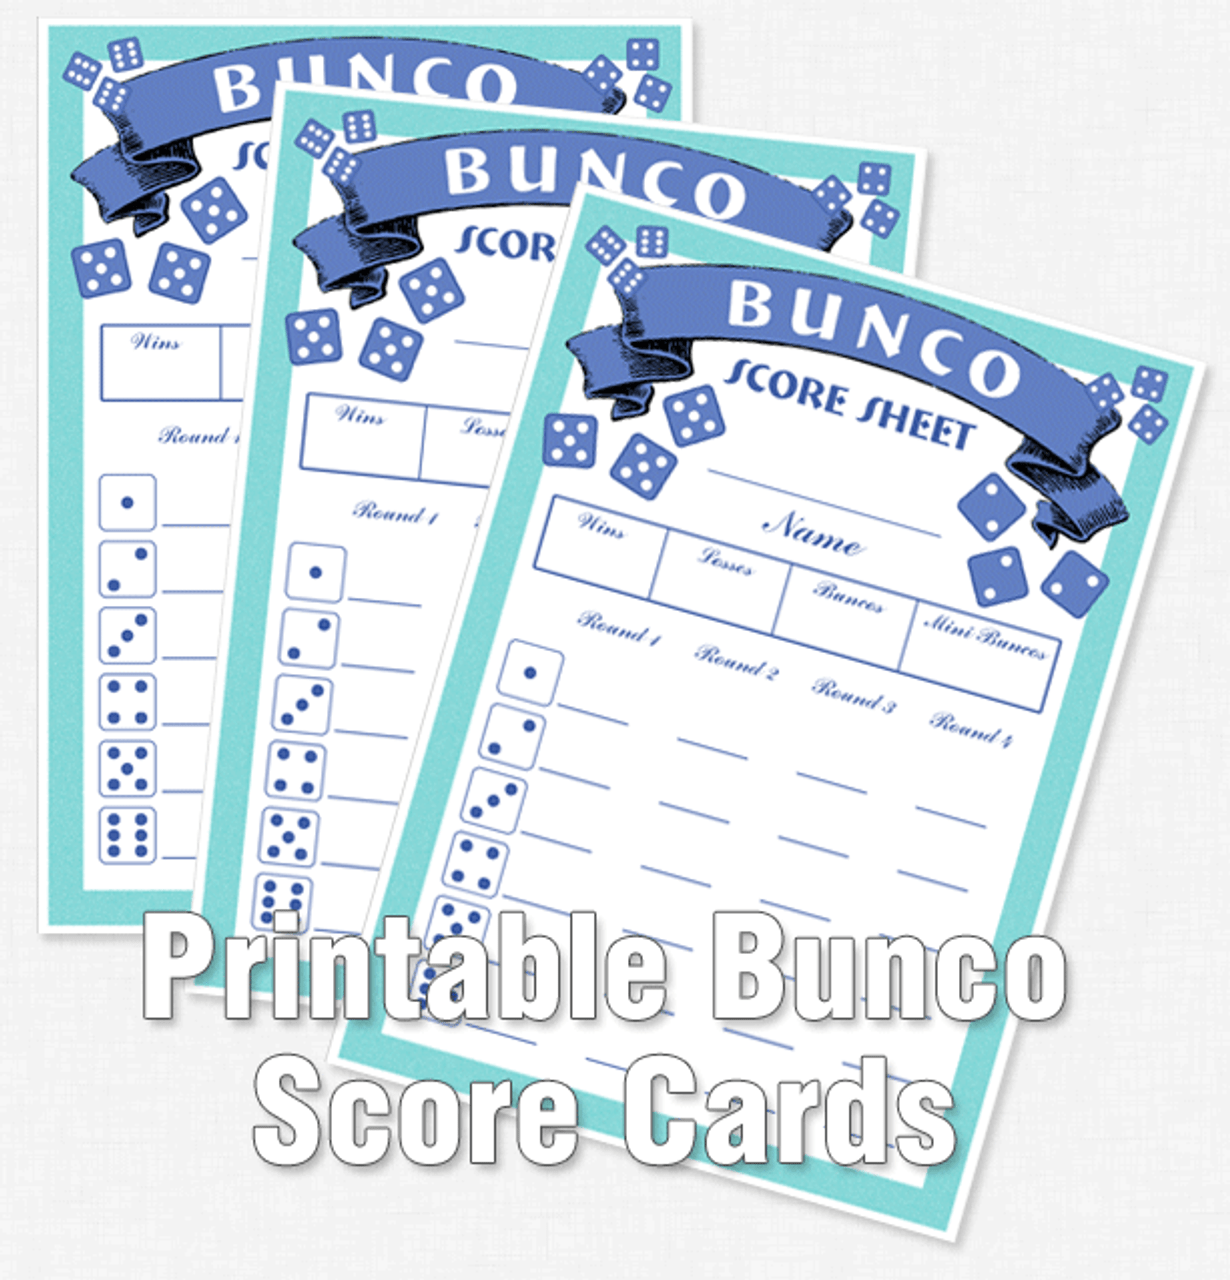 photo regarding Bunco Tally Sheets Printable titled Printable Bunco Rating Playing cards